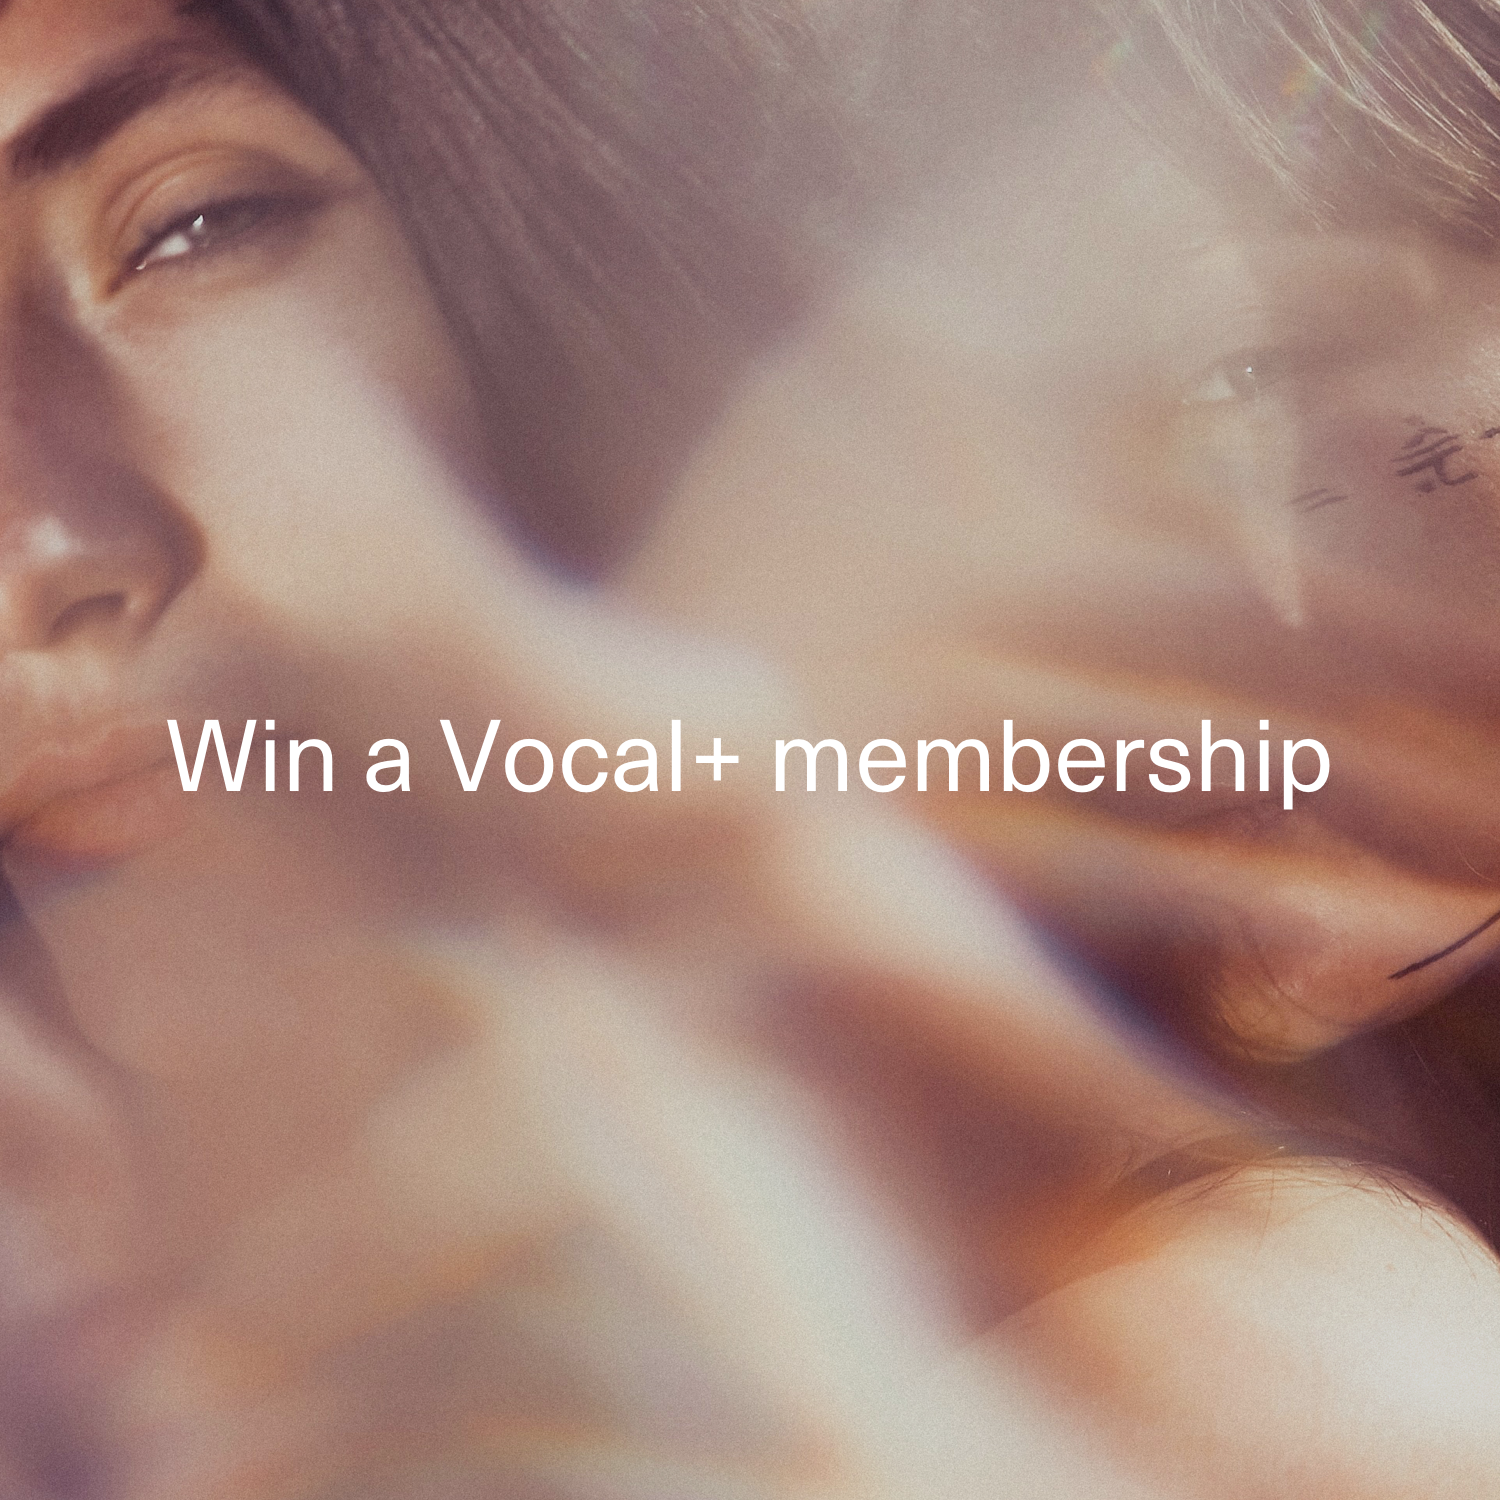 Enter a friend, maker, or creator who inspires you for a chance to win a Vocal+ Founding Membership